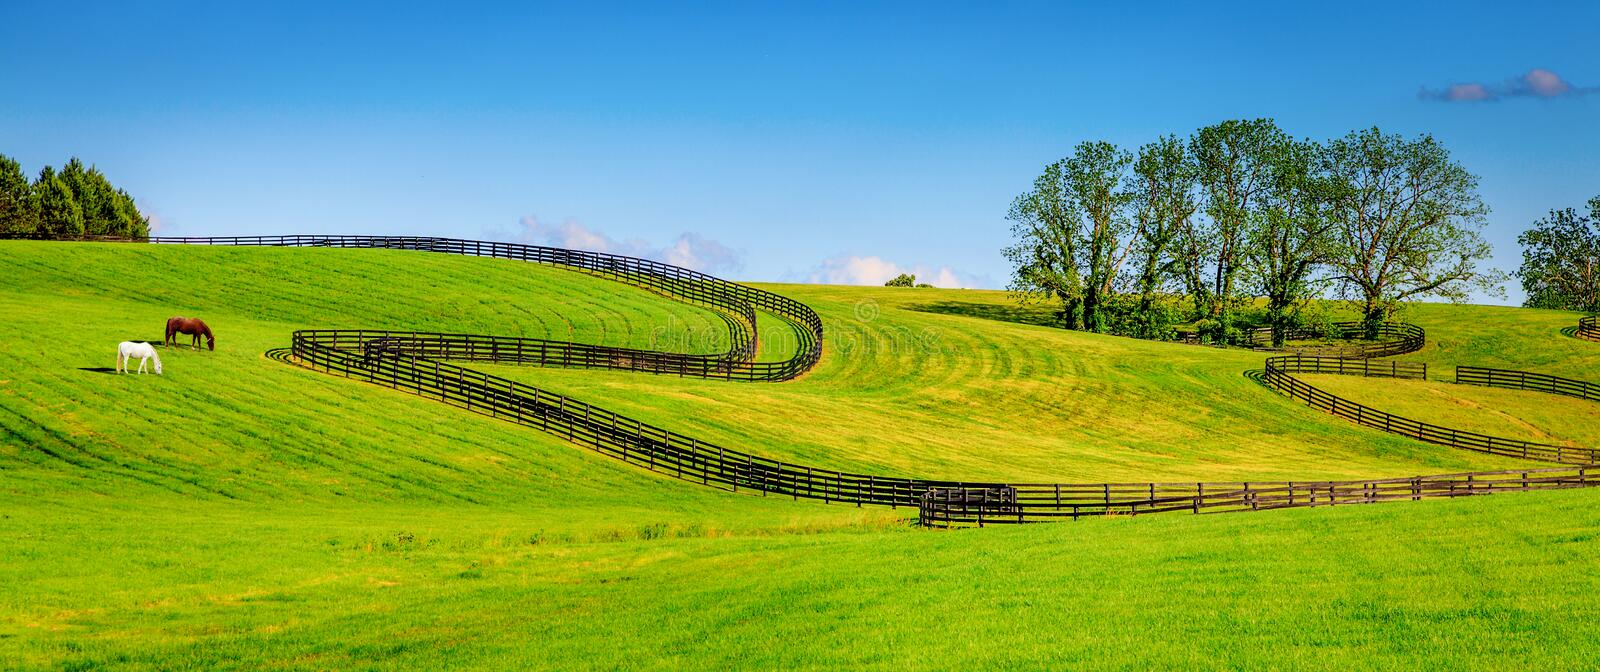 Horse farm fences. Scenic image of a horse farm with black wooden fences stock photography